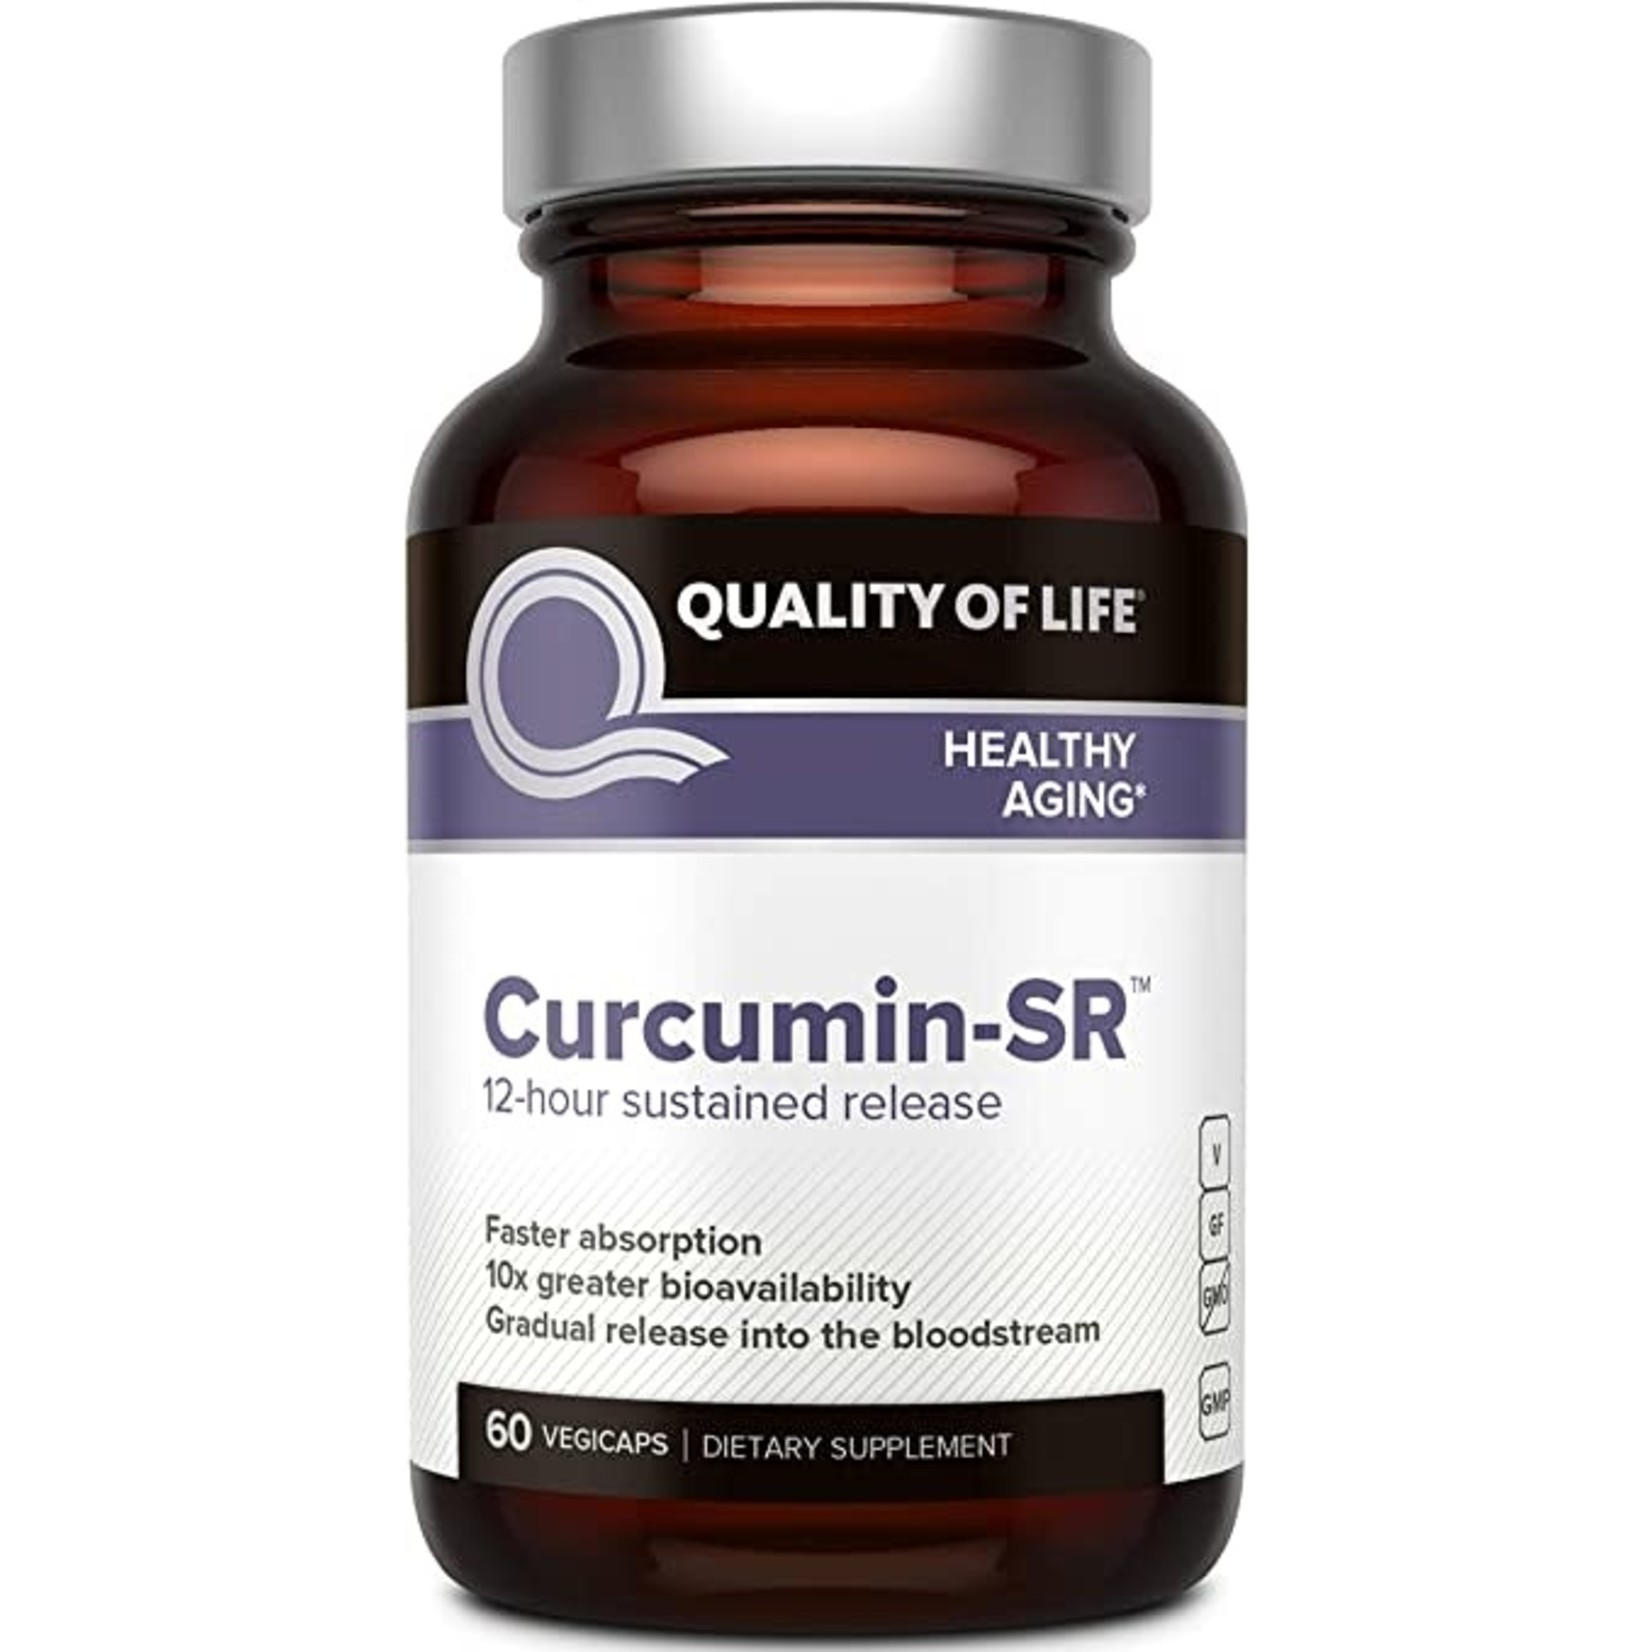 Quality of Life QOL Curcumin-SR 12 hour Sustained Release